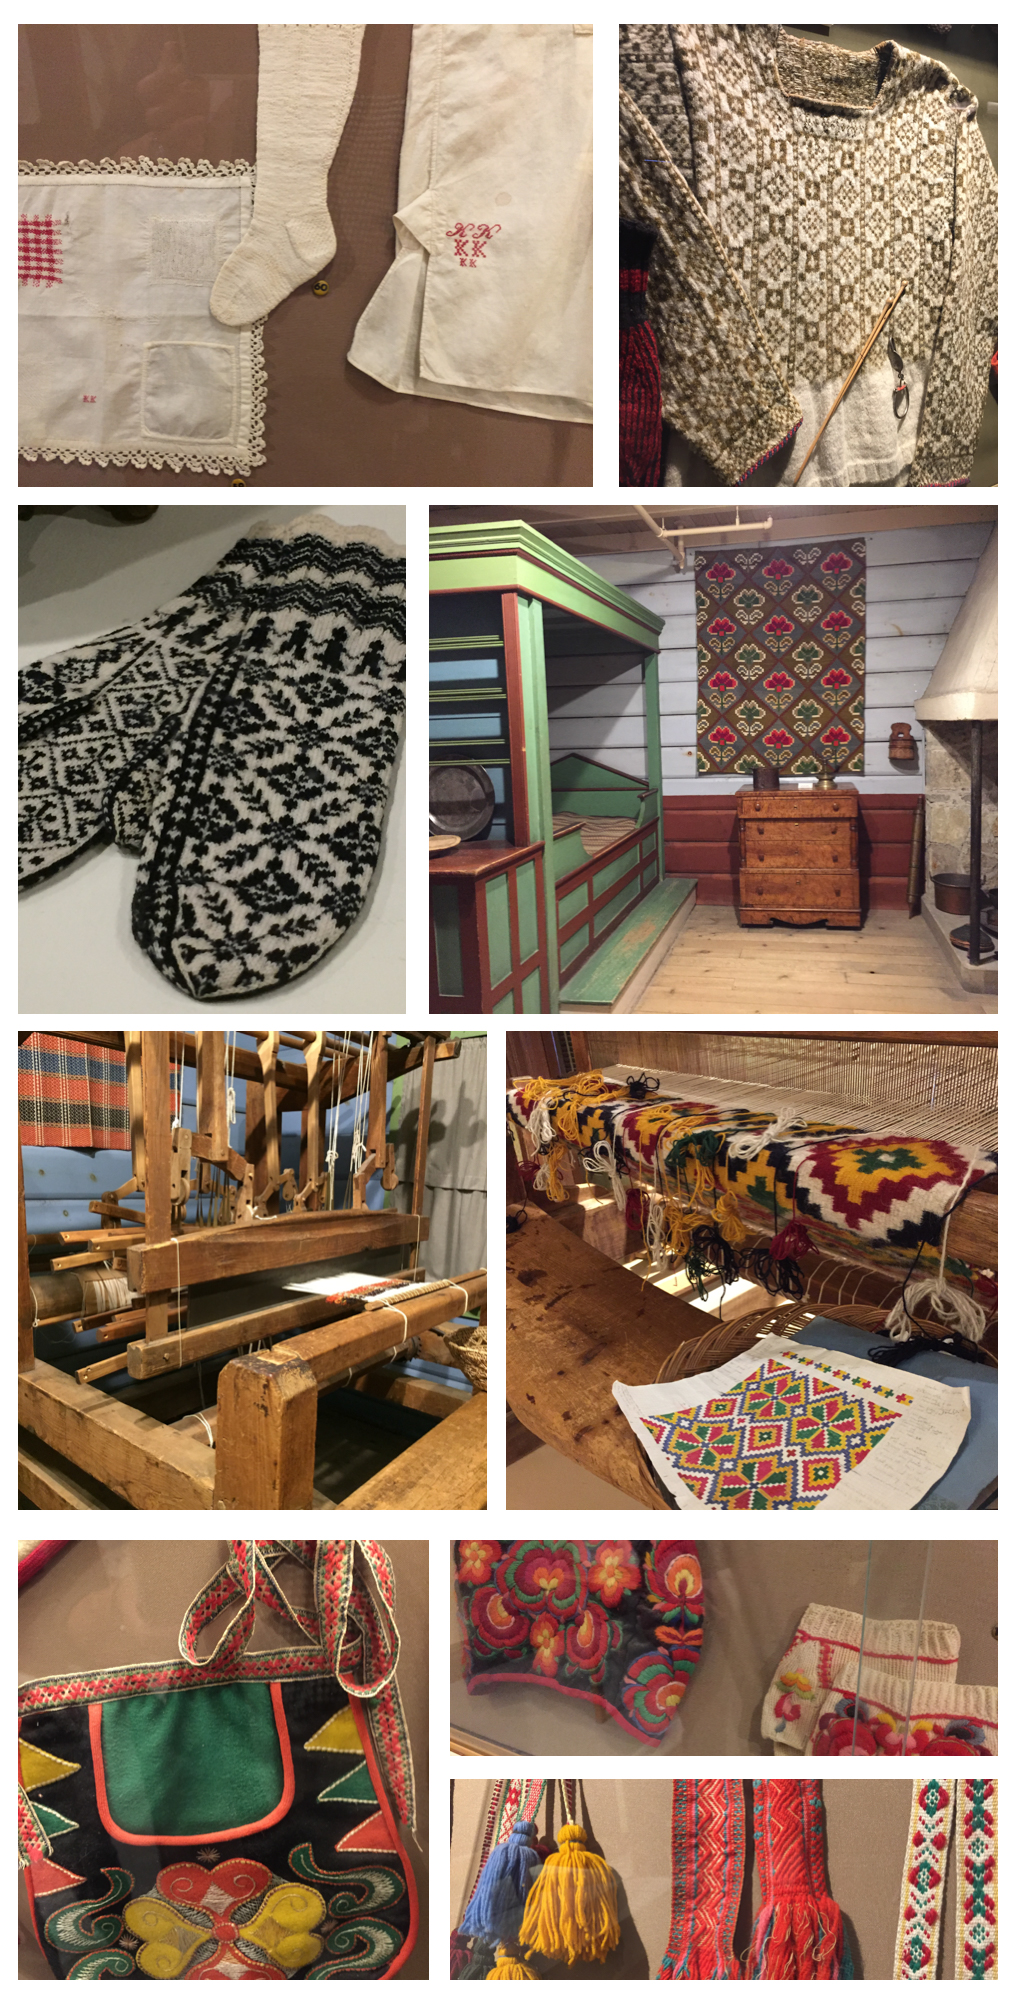 textiles of Norwegian heritage throughout the museum